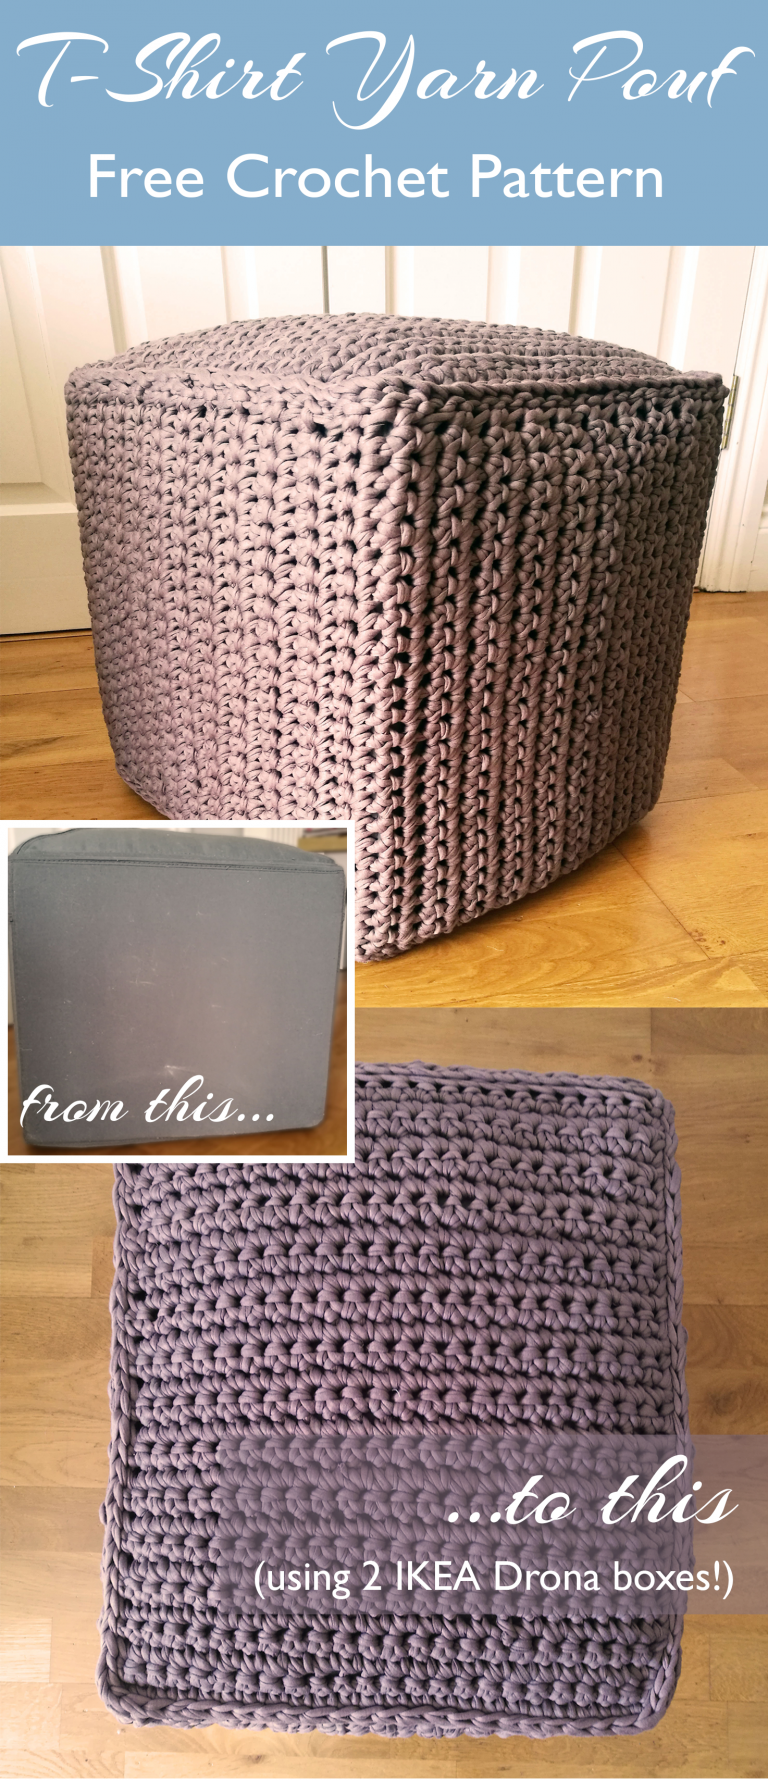 Crochet T Shirt Yarn Pouf Using Ikea Drona Boxes Yastiklar